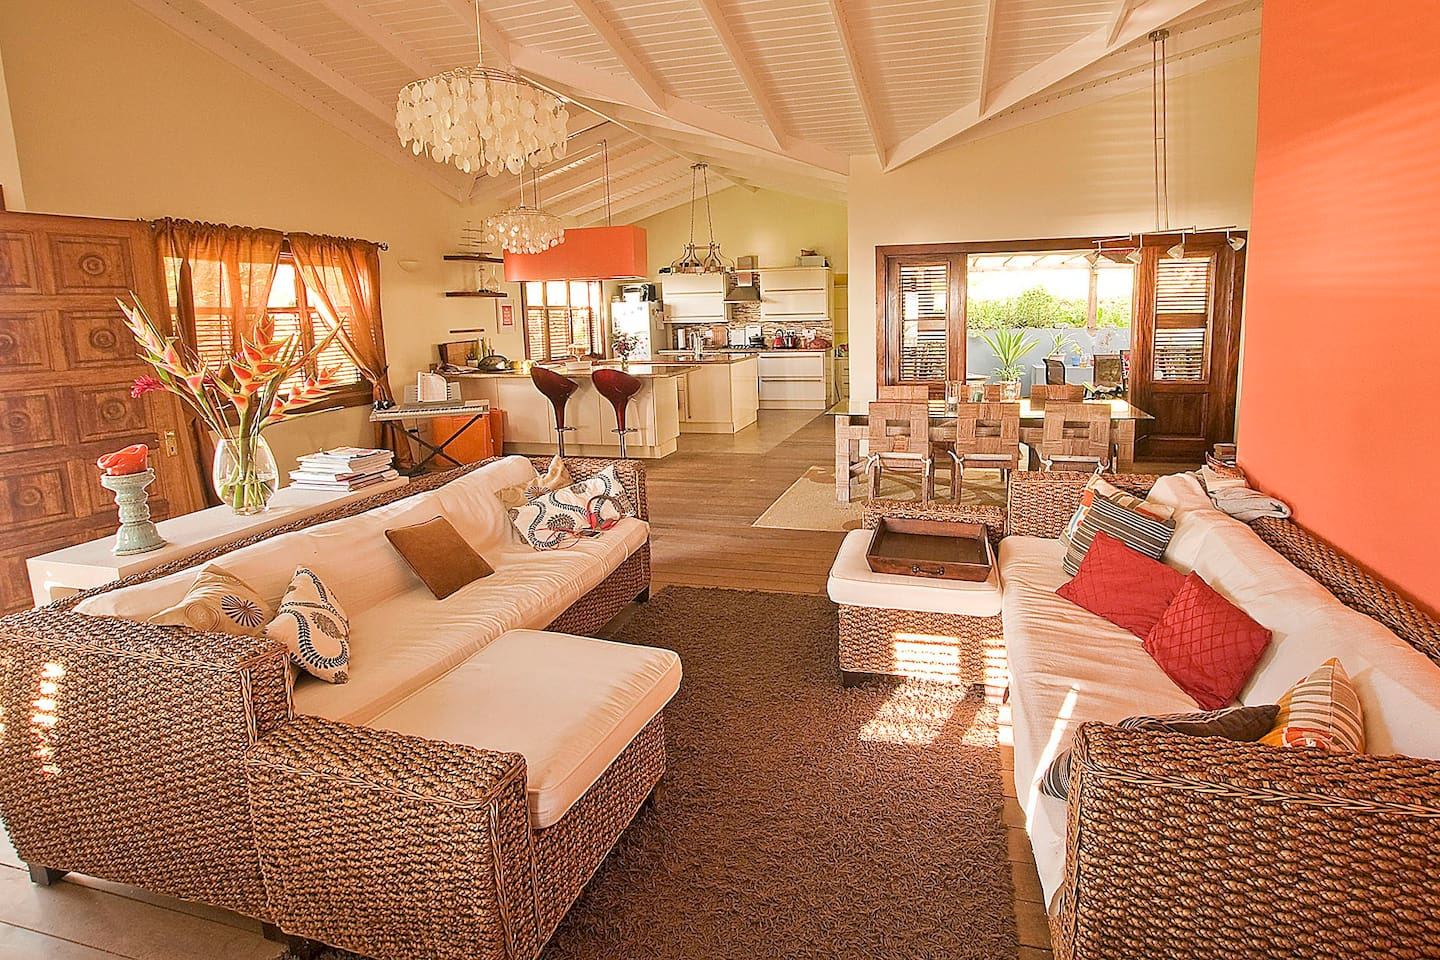 Spacious main living area photographed by our guest Tim - Feb 2015.